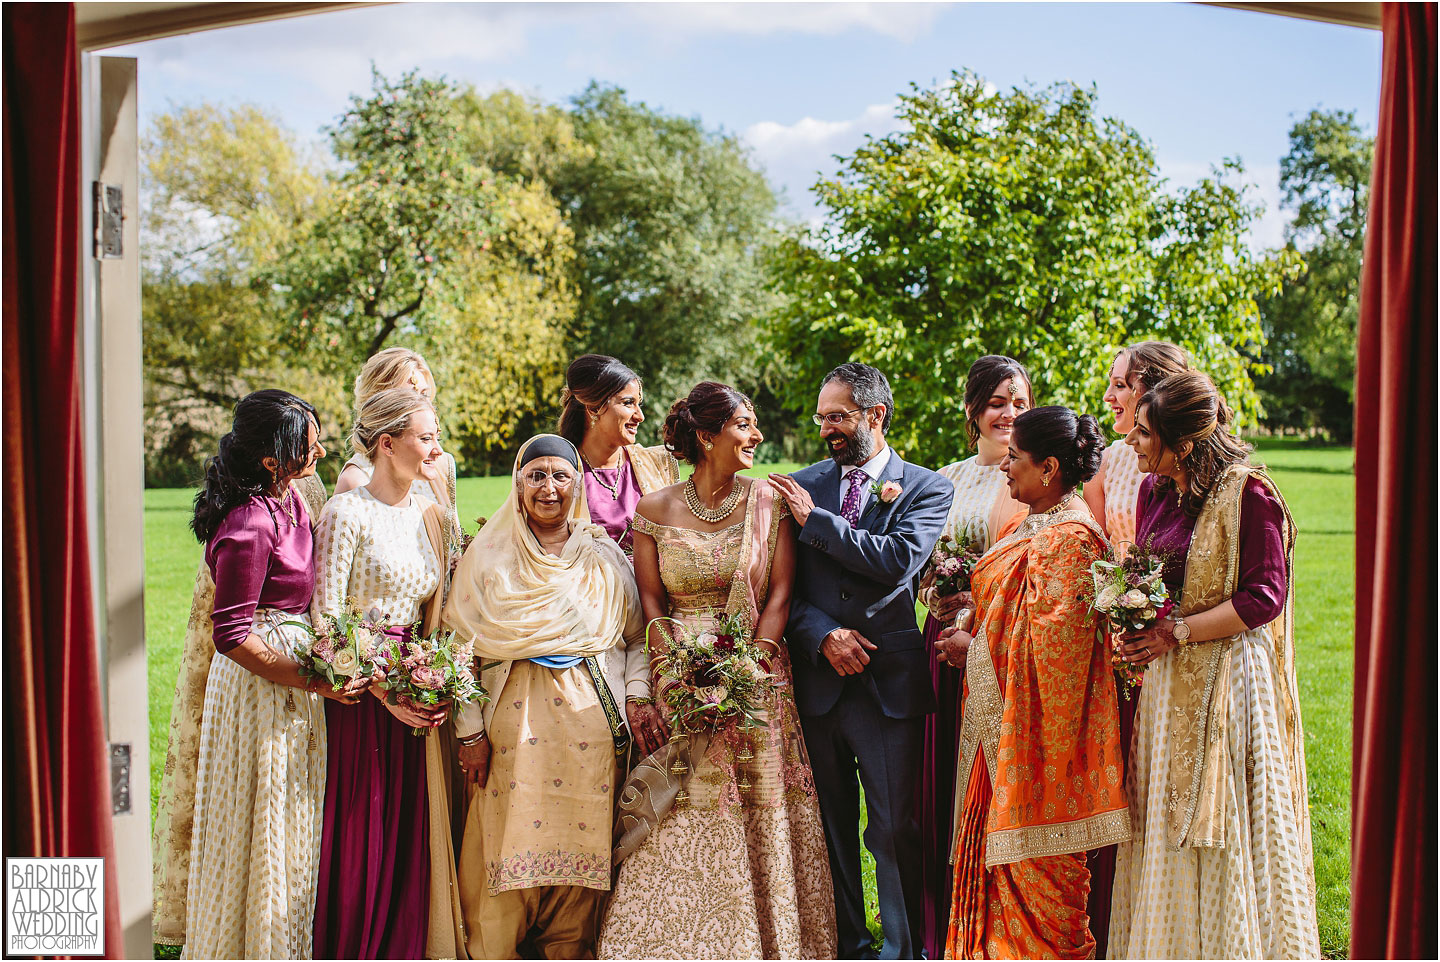 Indian Wedding Photography at Priory Cottages near Wetherby Yorkshire